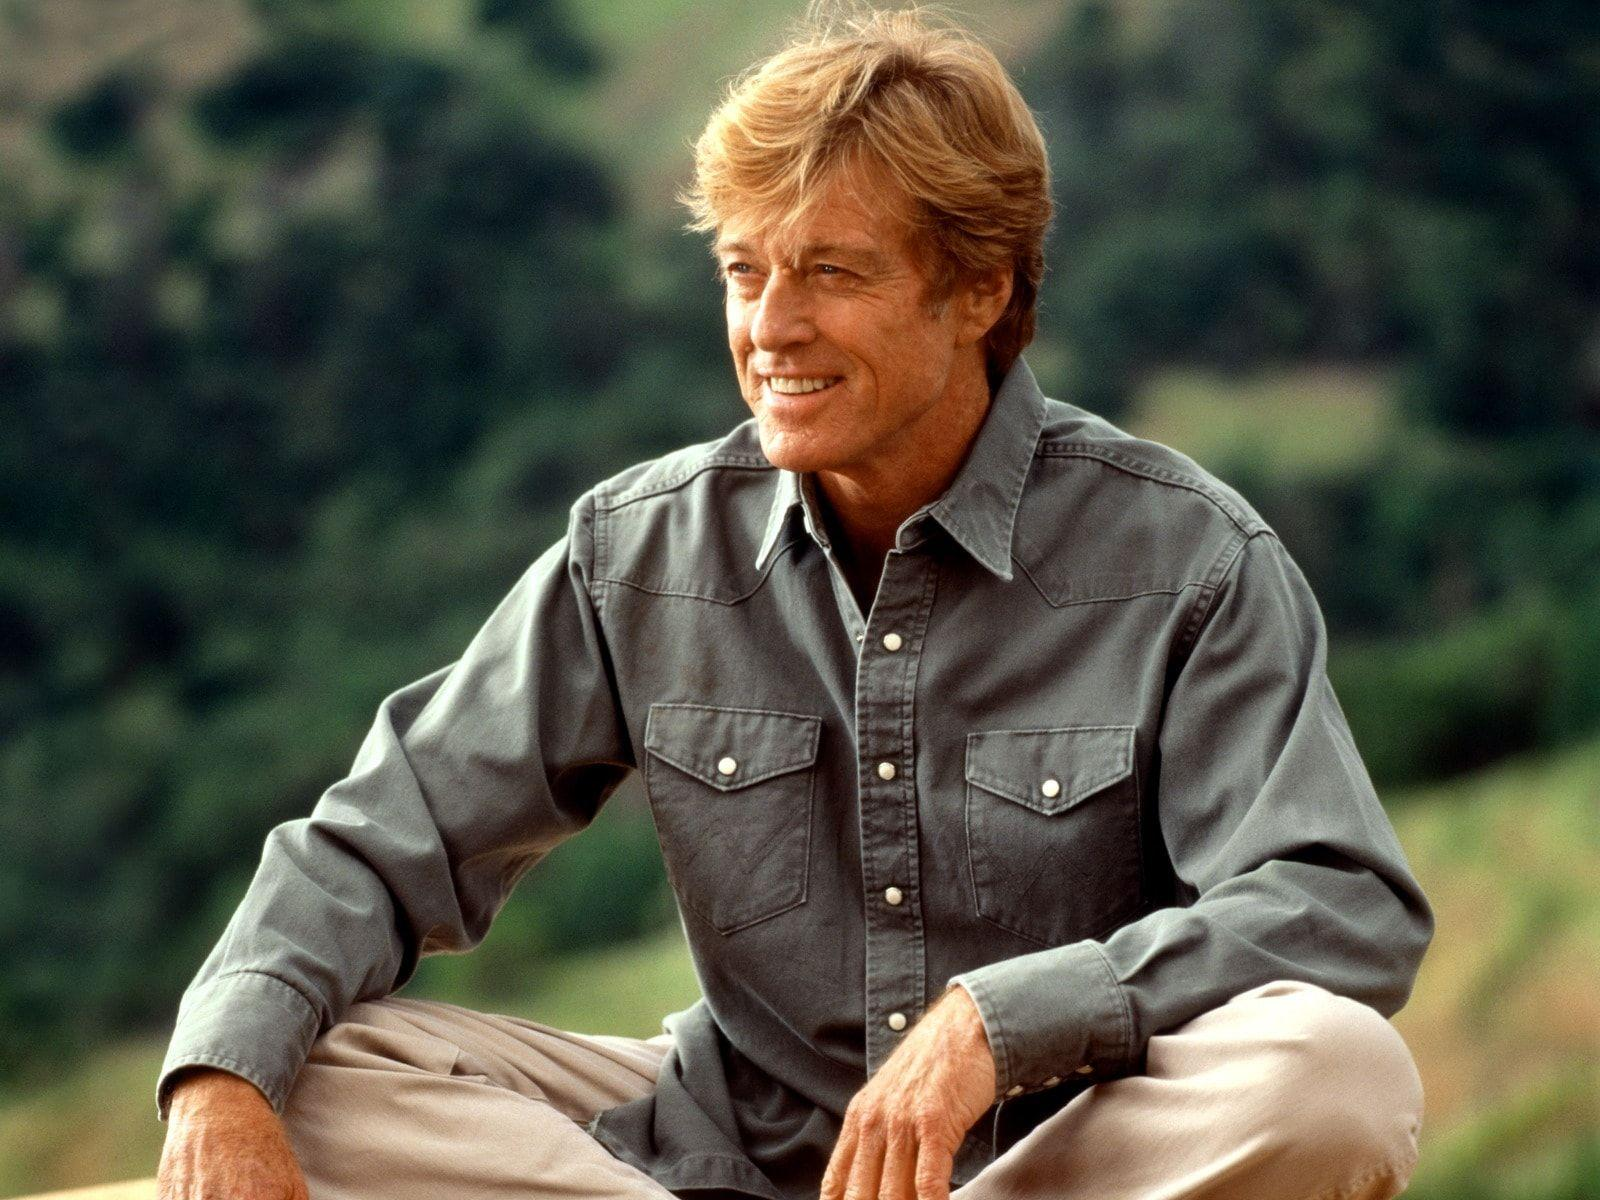 Robert Redford HD Desktop Wallpapers | 7wallpapers.net